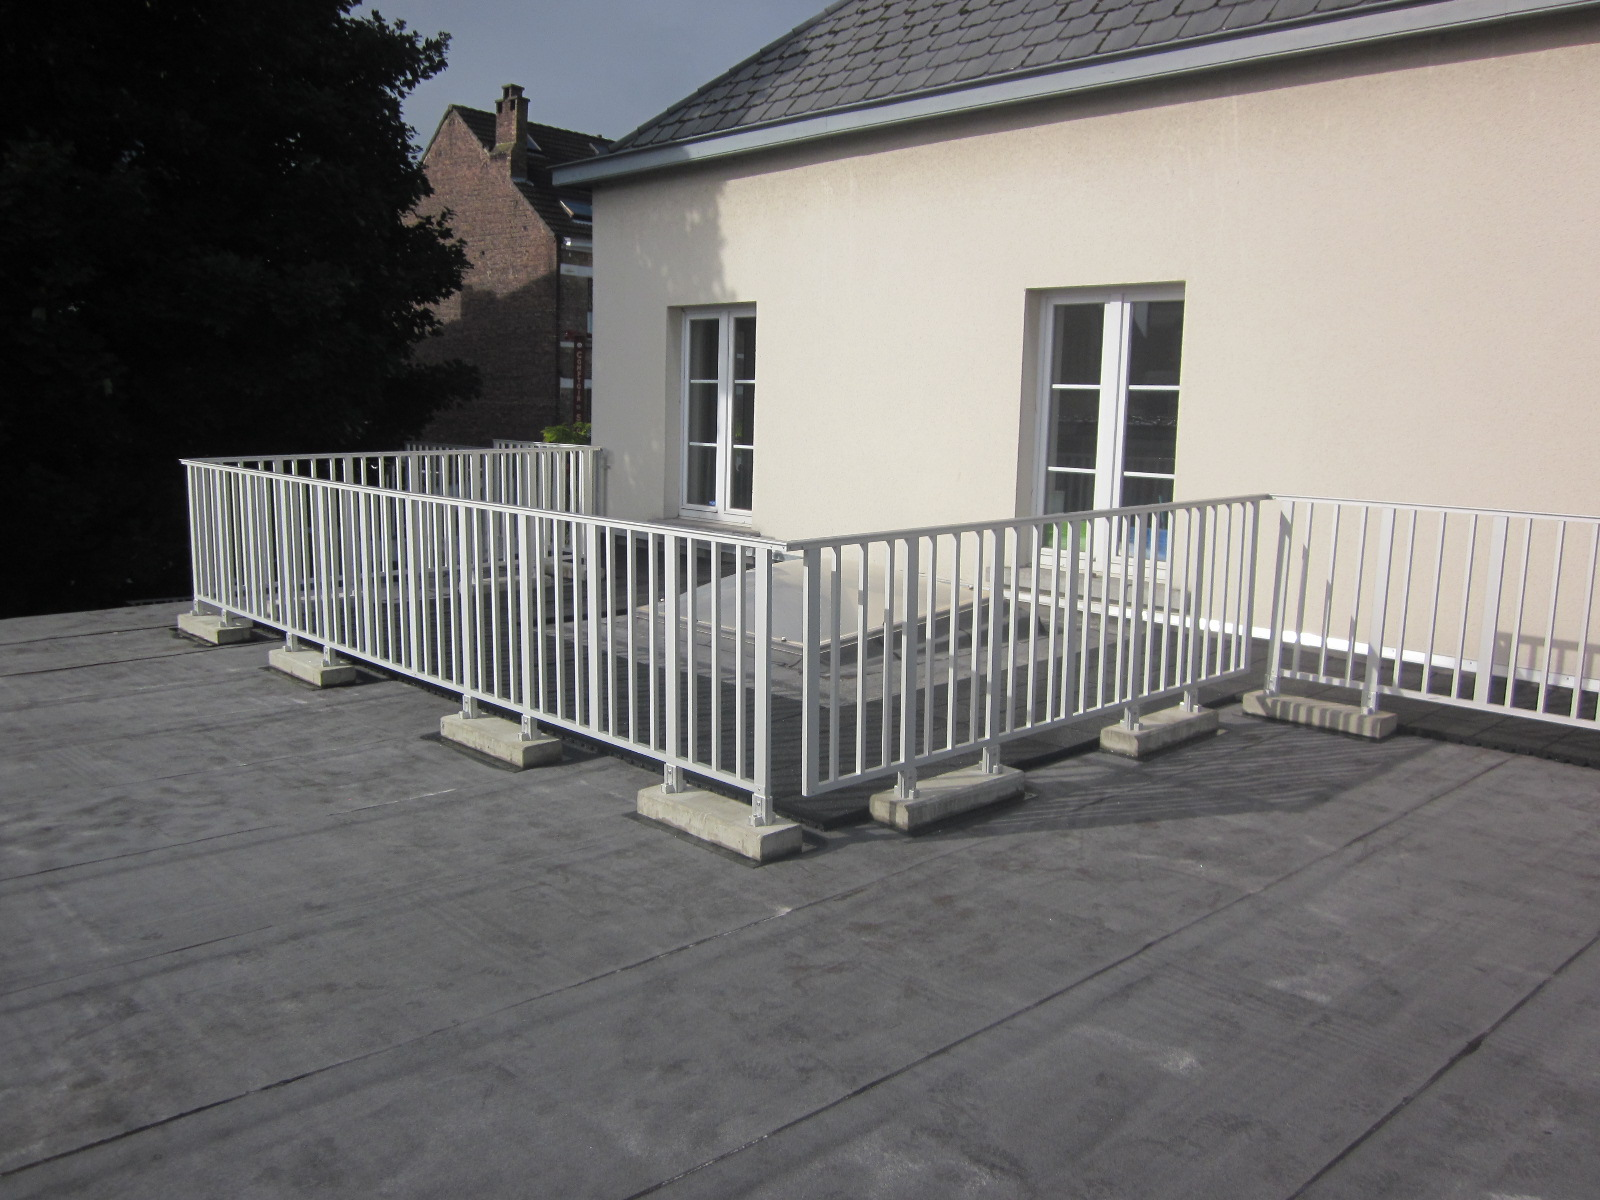 Aluminum handrails on a roof